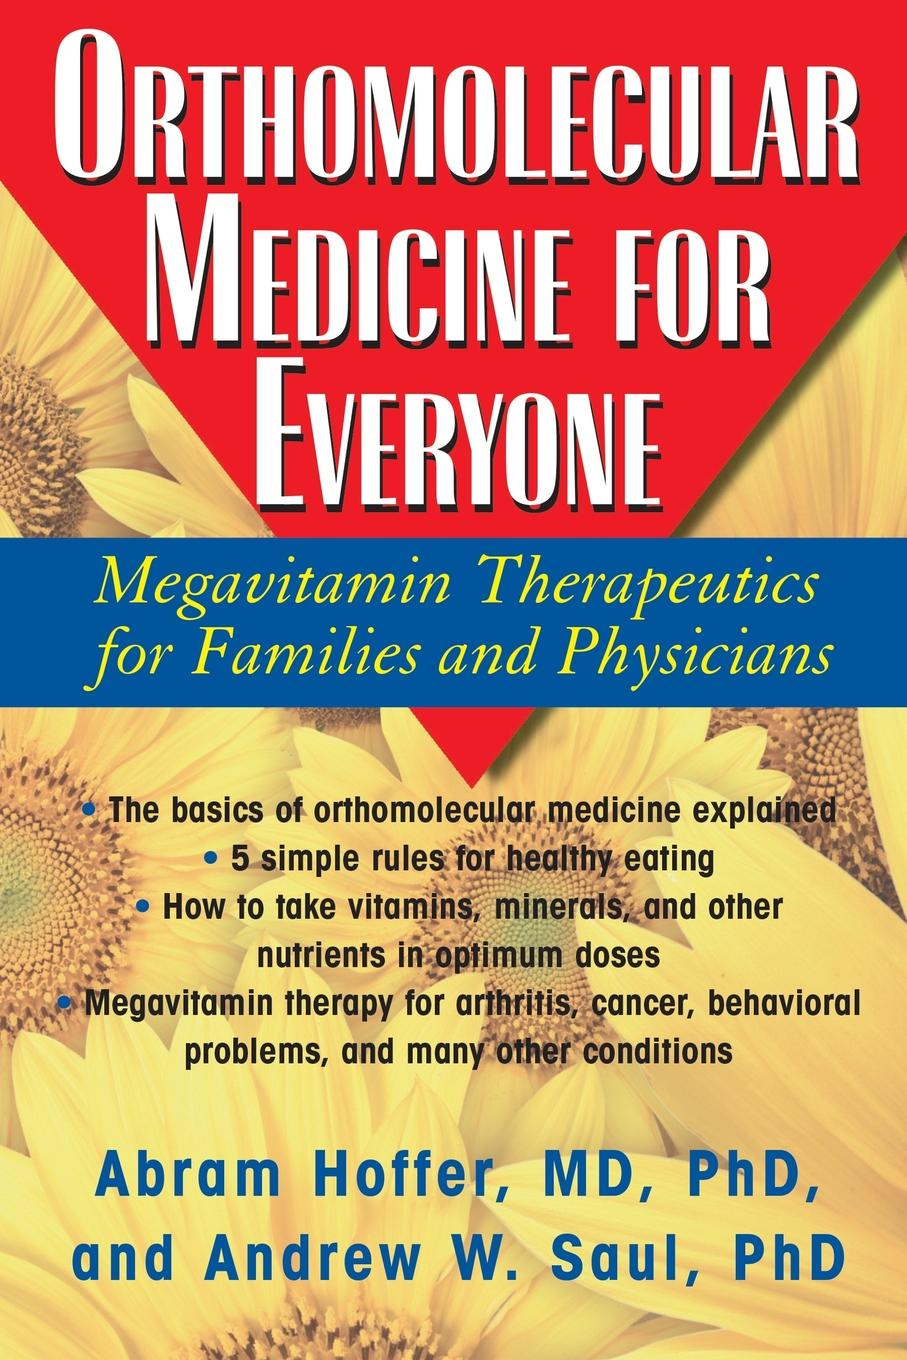 M.D. Ph.D. Abram Hoffer, Andrew W Saul Orthomolecular Medicine for Everyone. Megavitamin Therapeutics for Families and Physicians marsha peterson maass fundamentals of genealogy basics for everyone